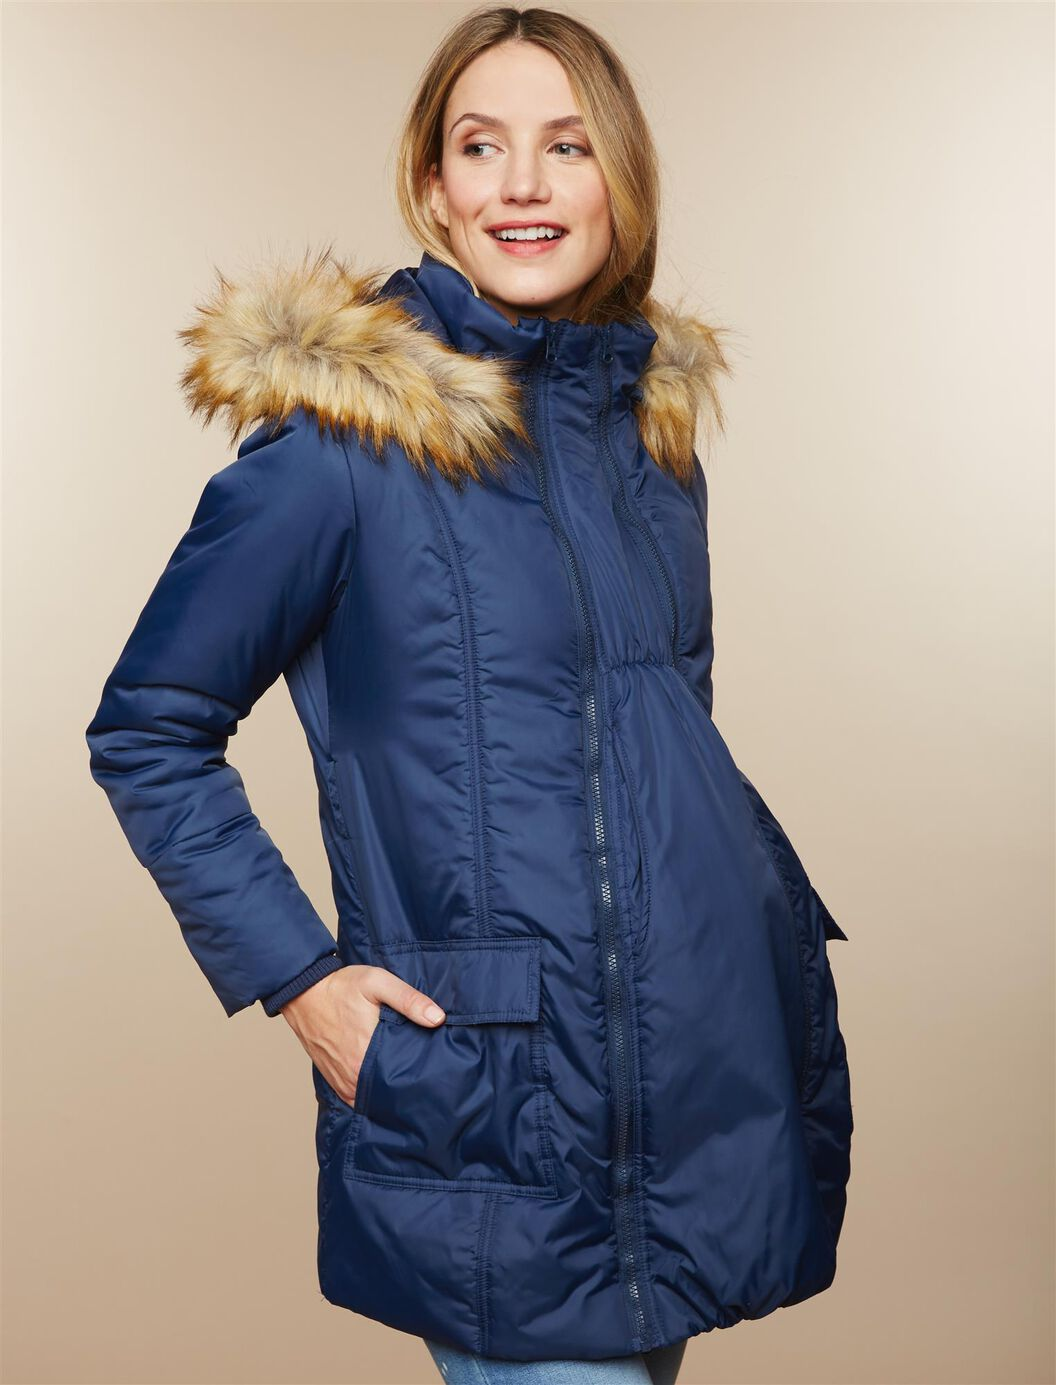 Modern Eternity 3 In 1 Belted Maternity Puffer Coat at Motherhood Maternity in Victor, NY | Tuggl